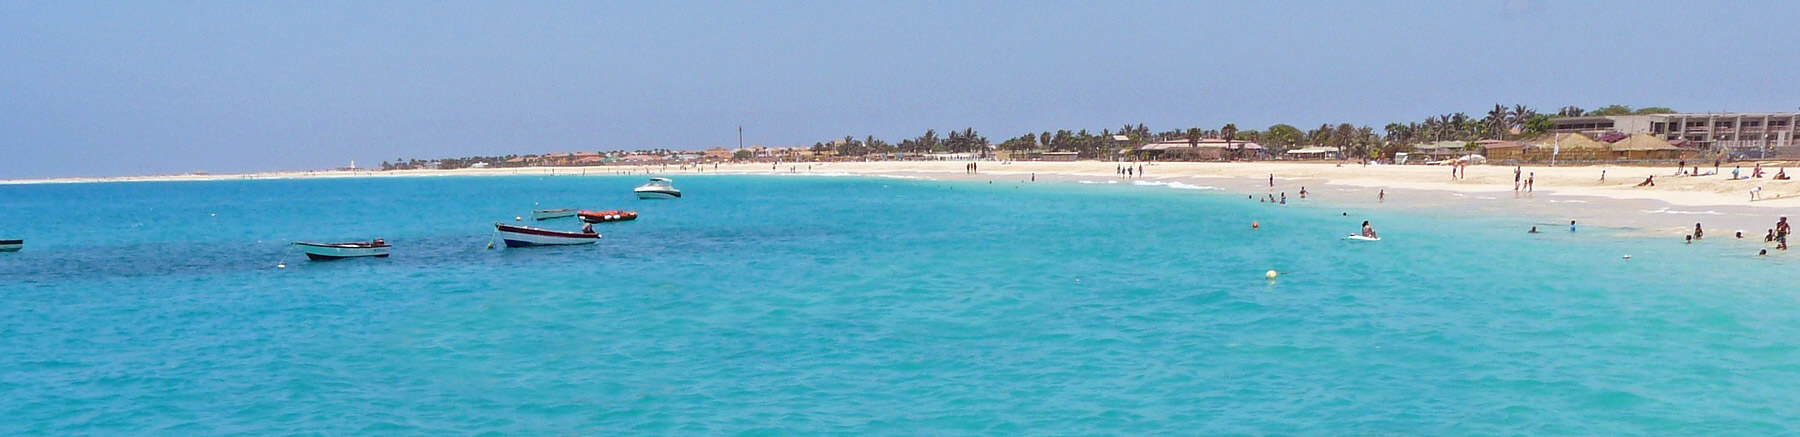 Beautiful beach with turquoise water and white sand in Cape Verde